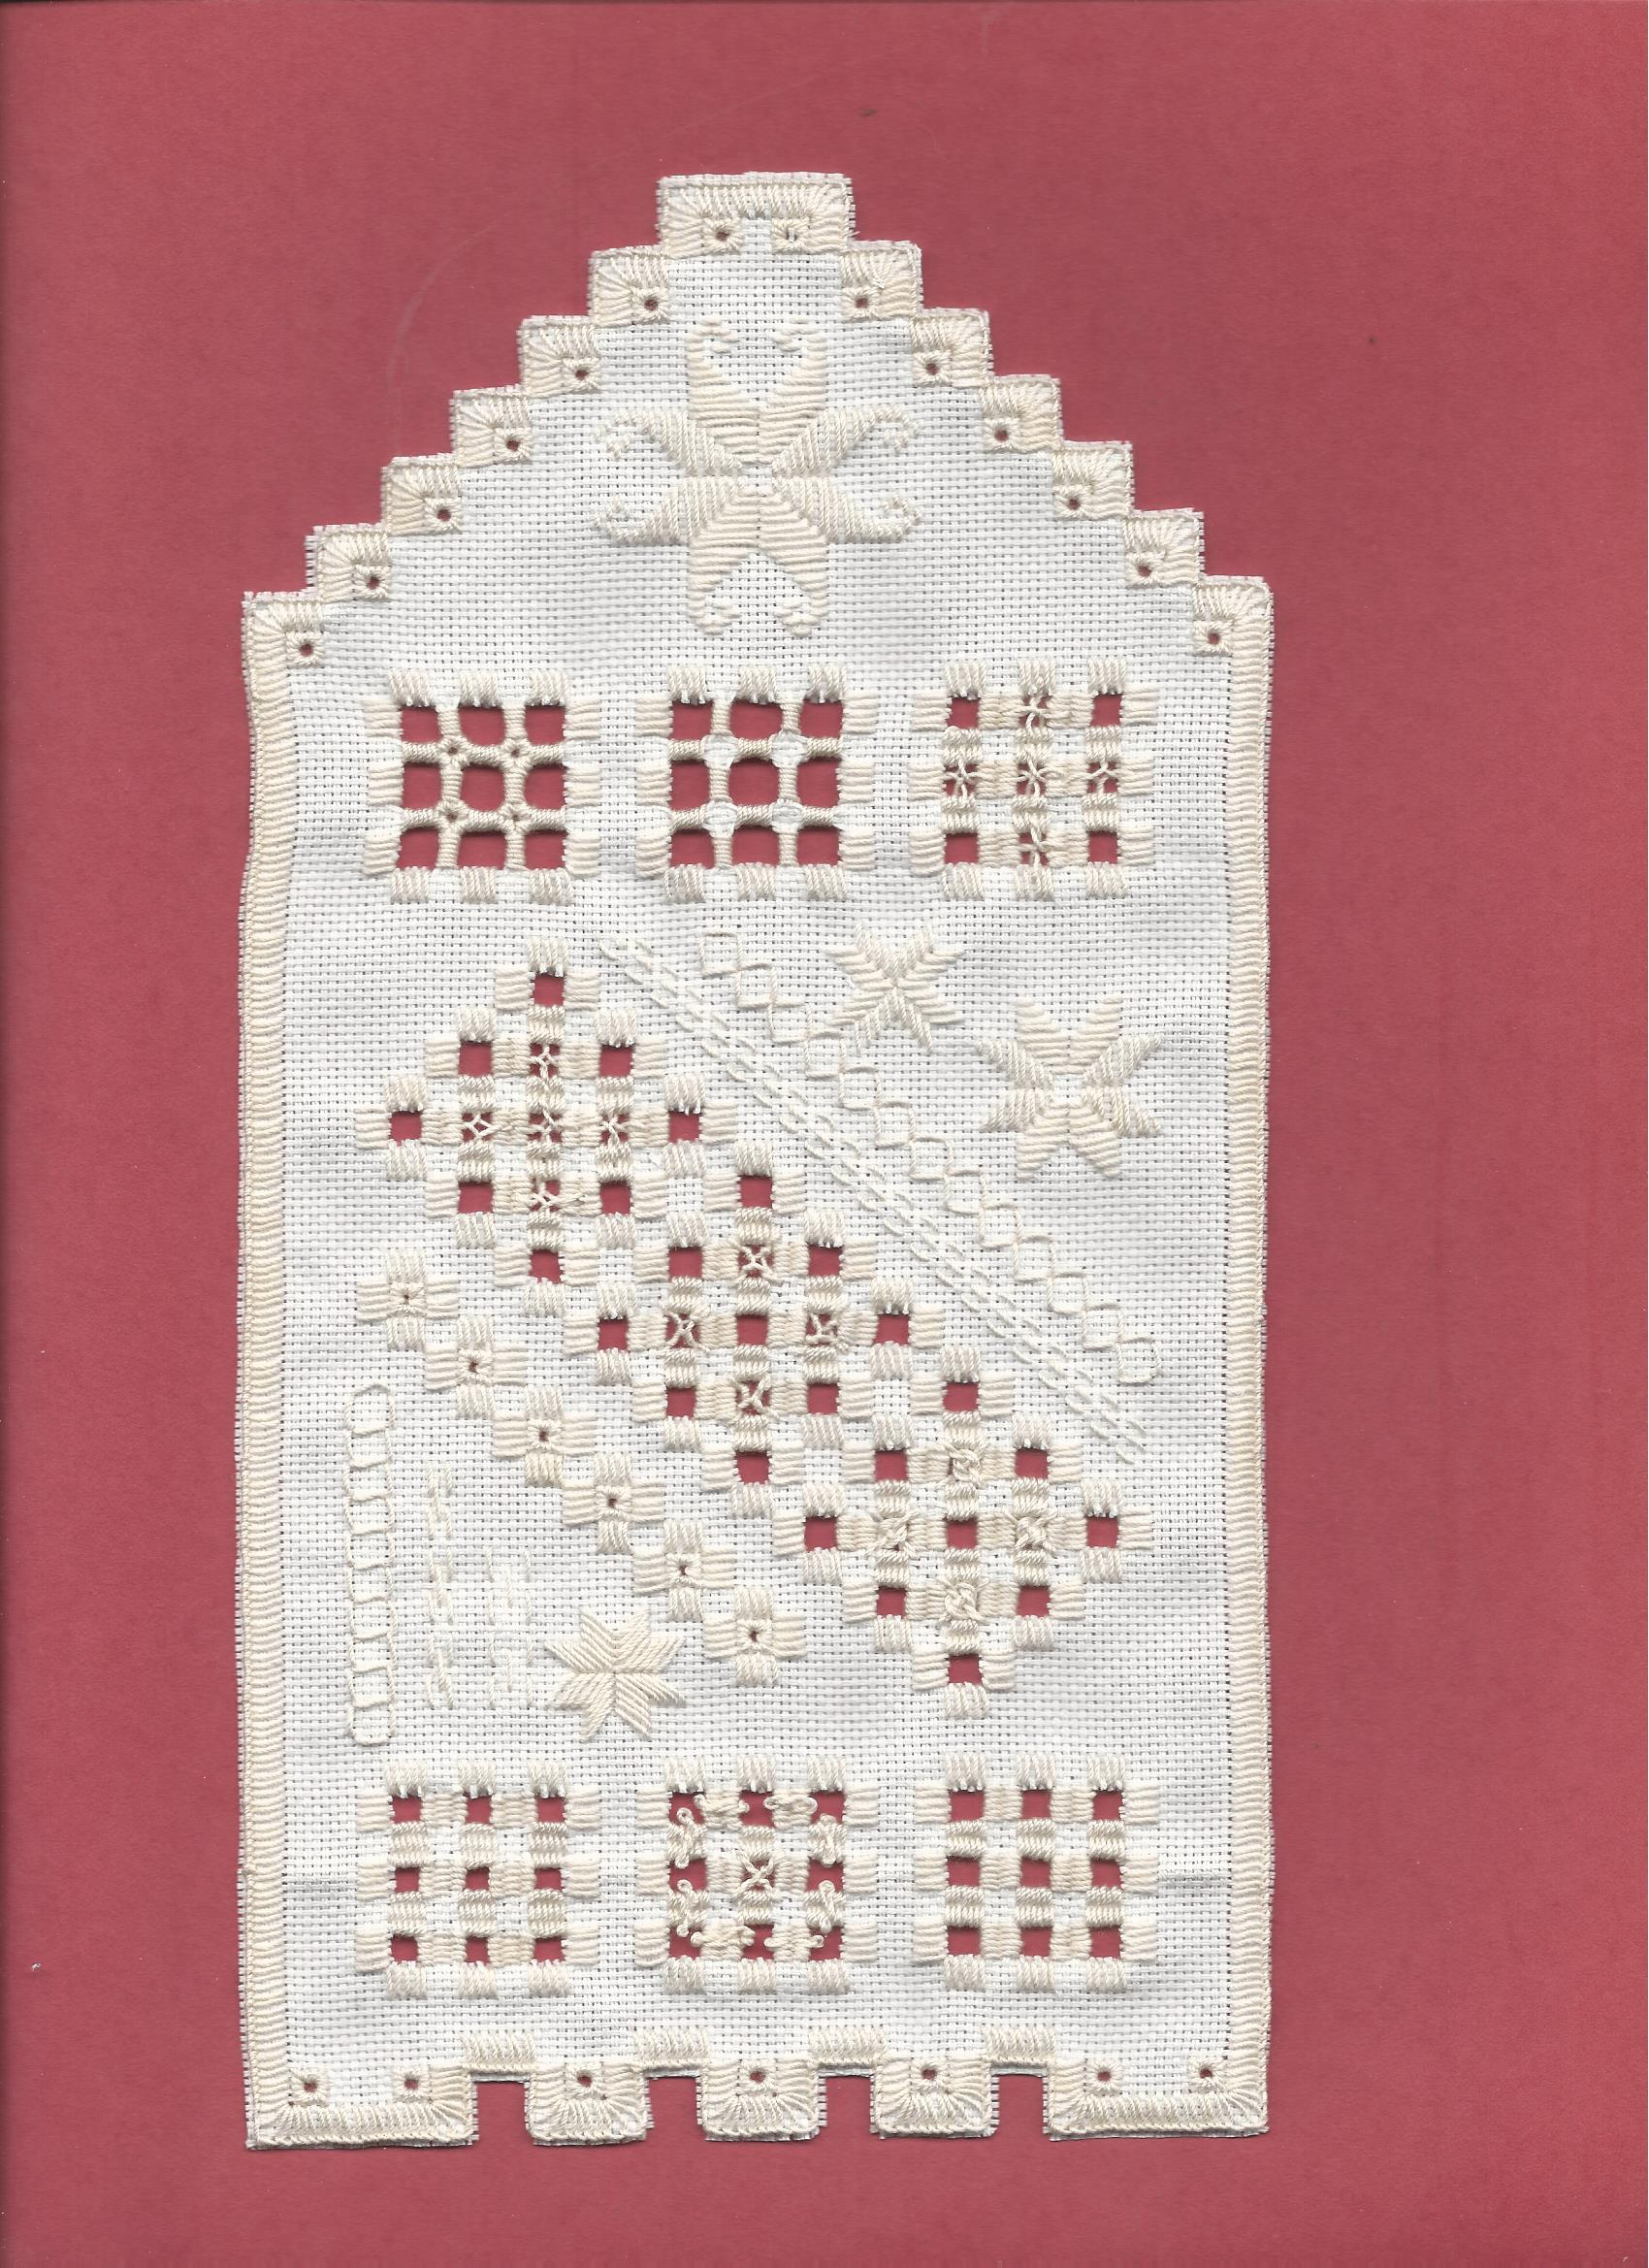 Lorelei's Hardanger design, finished May 26,2020